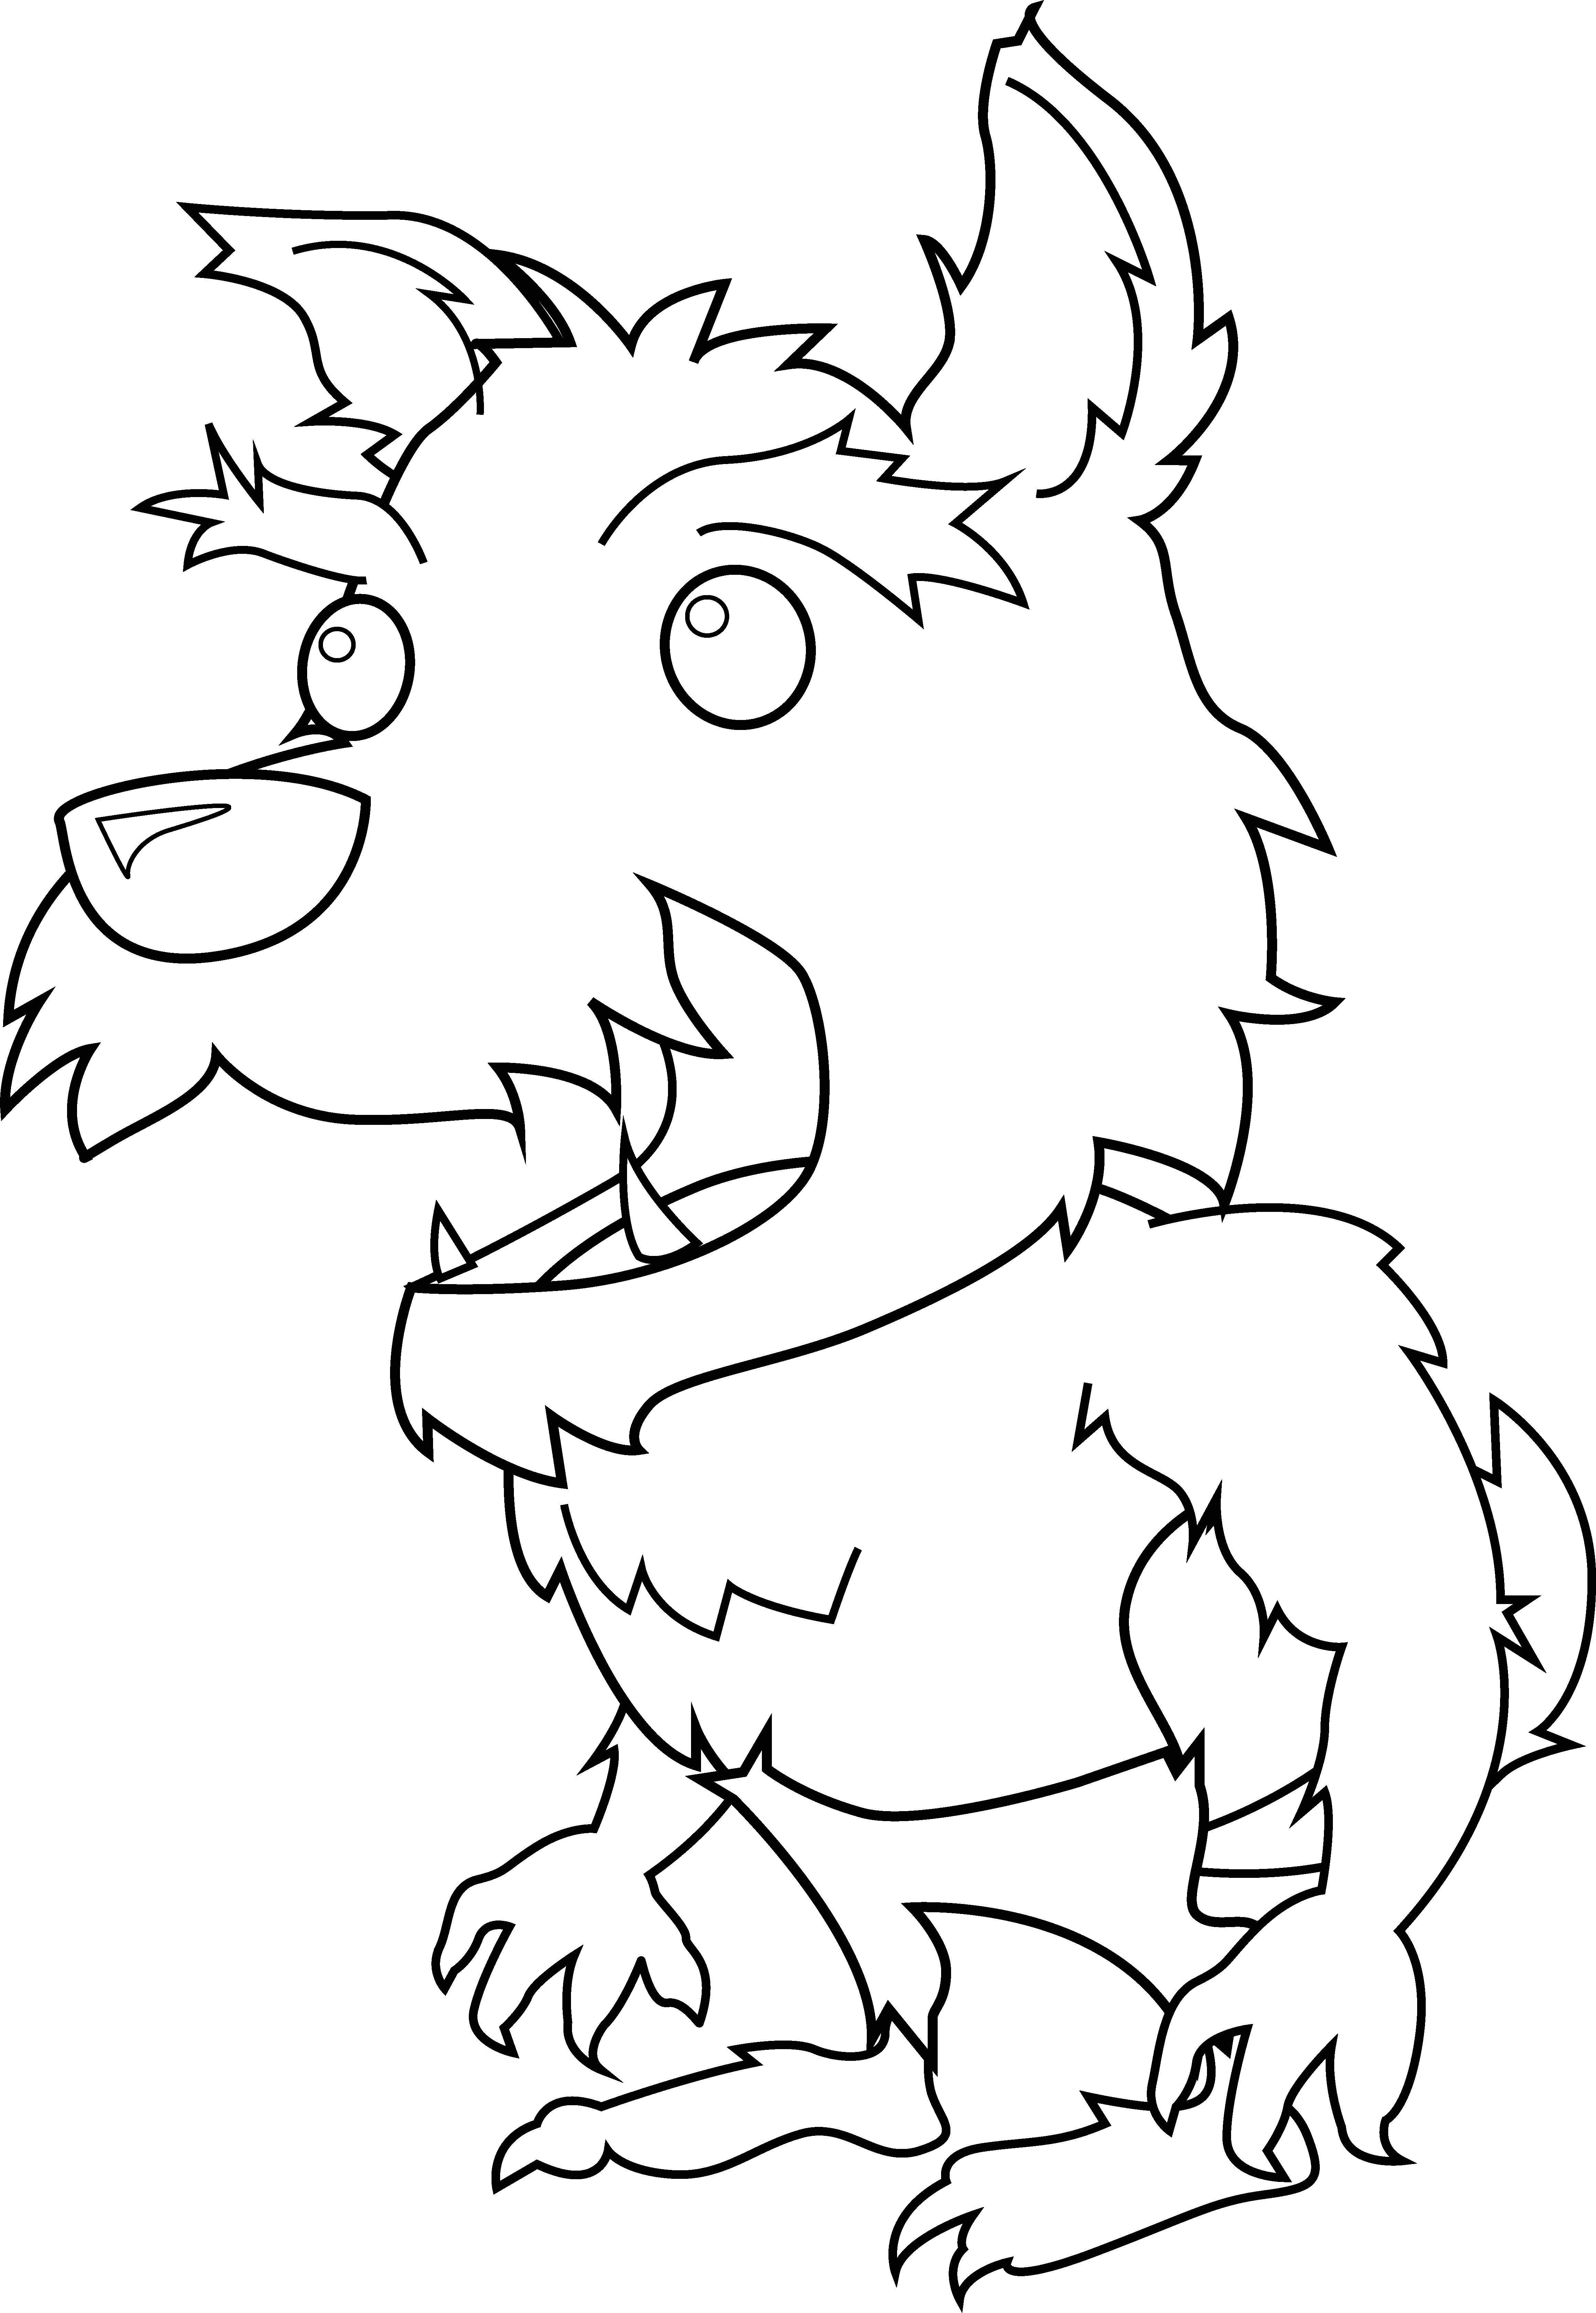 Scary clip window. Free cartoon werewolves download